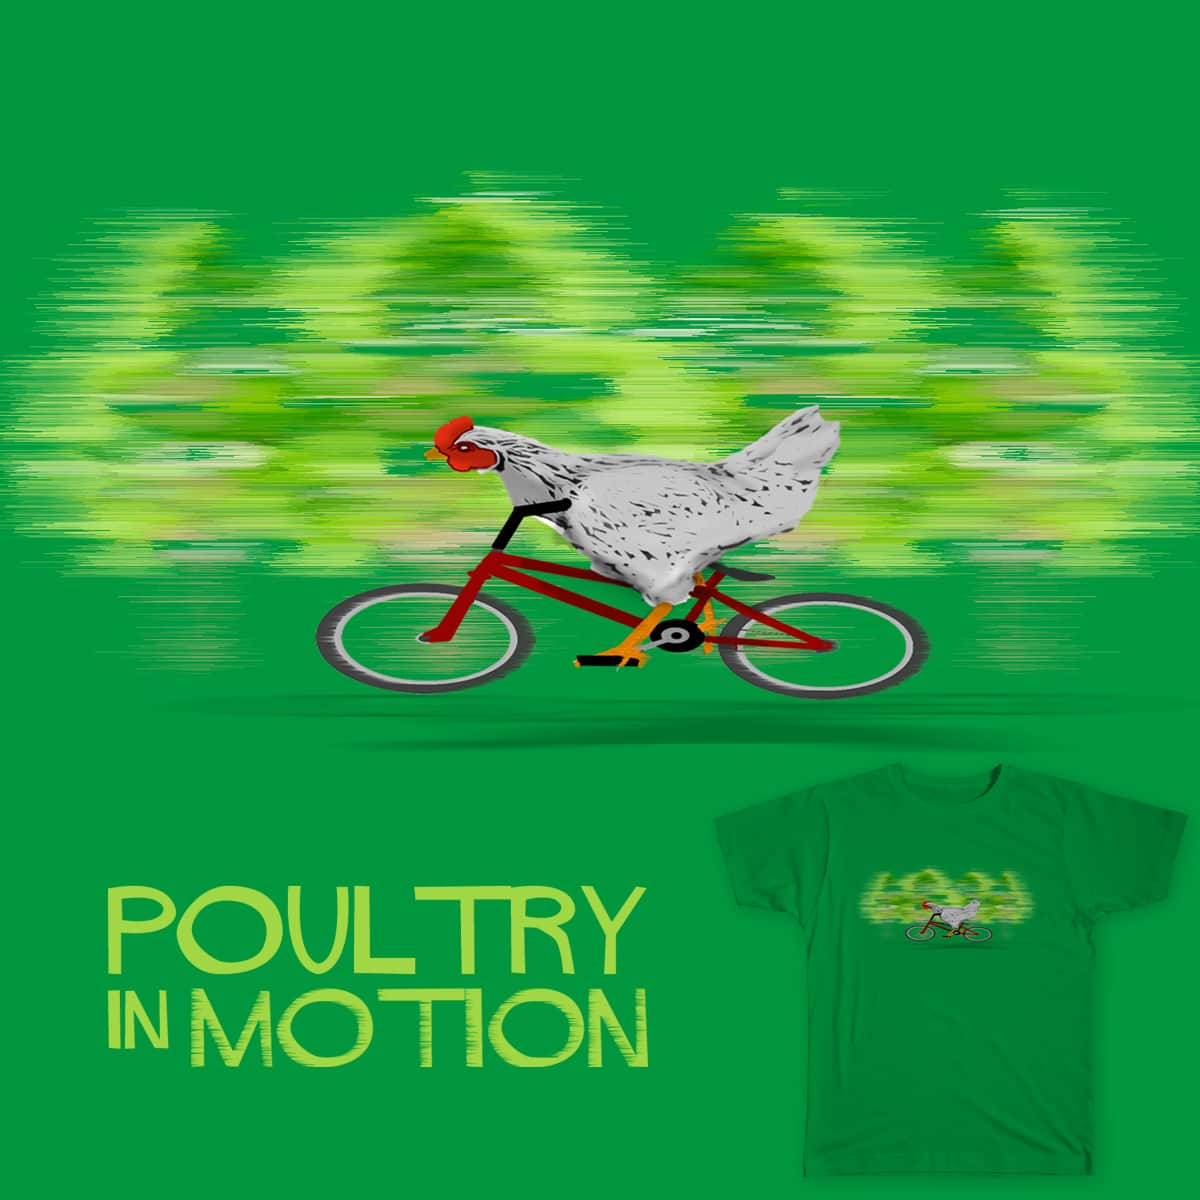 Poultry In Motion by scottsherwood on Threadless